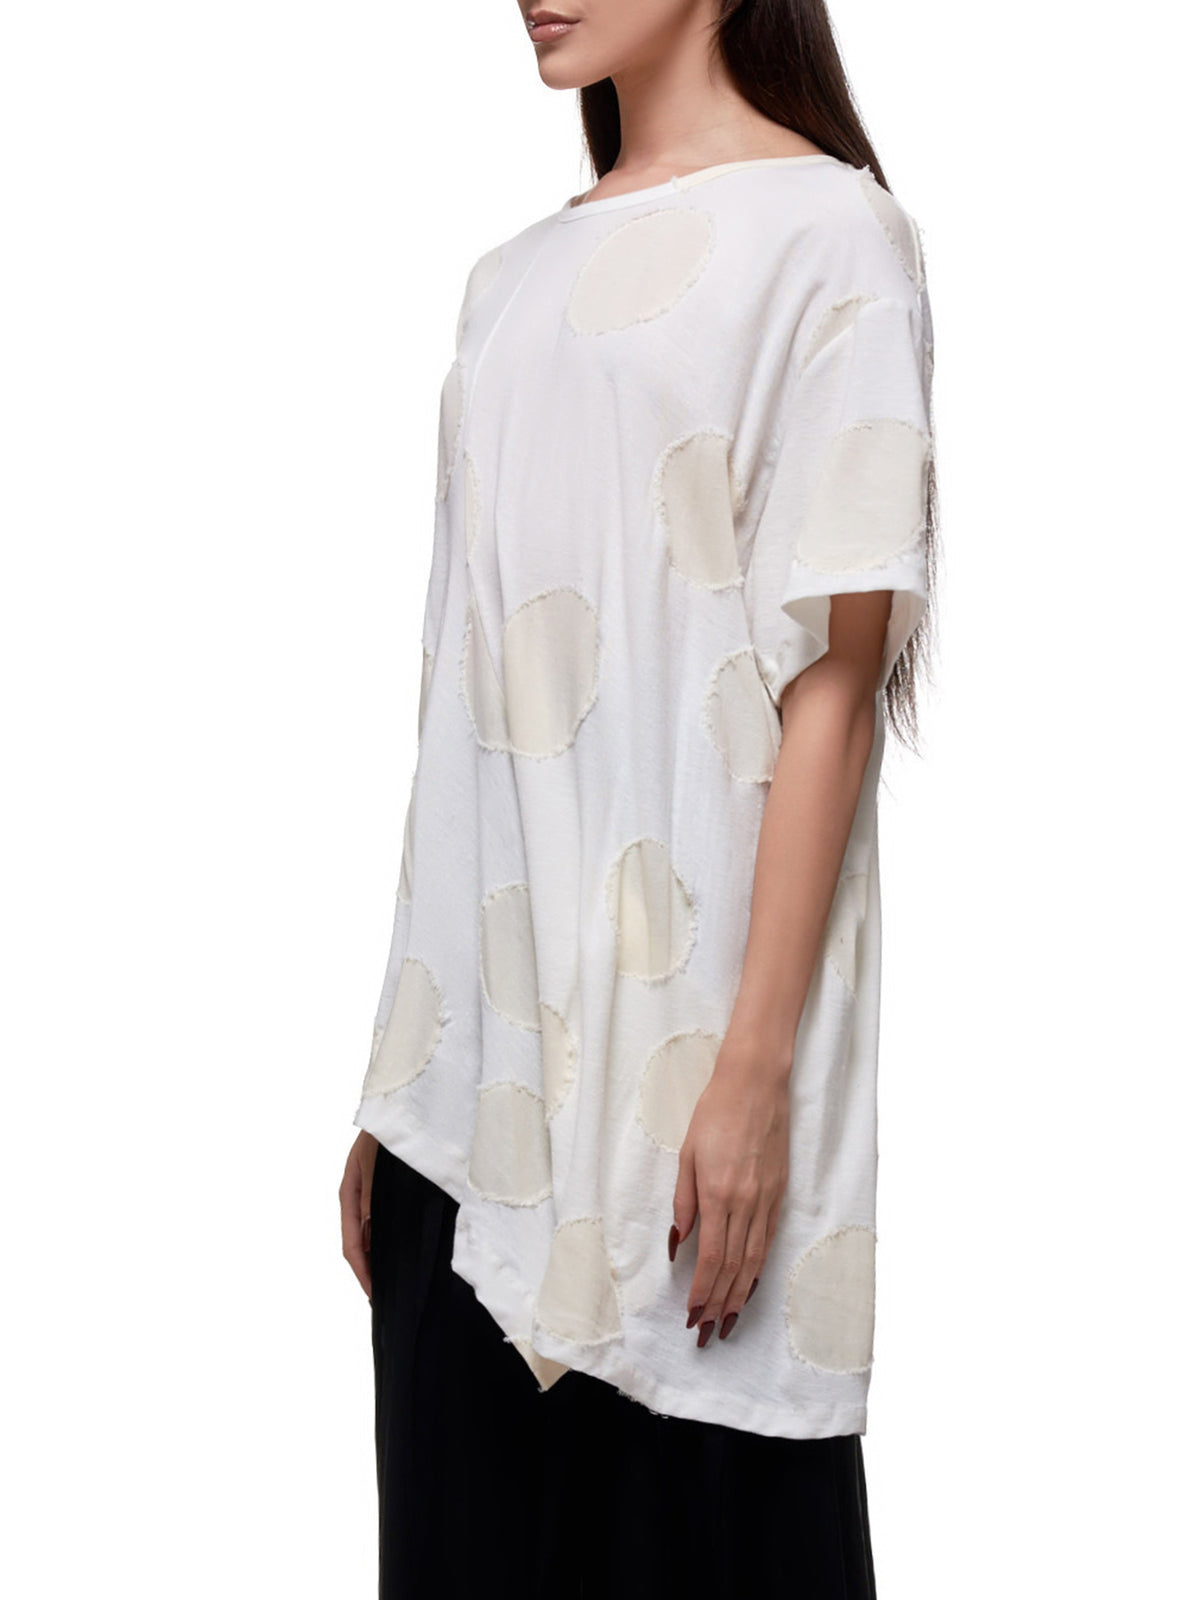 Raw Polka Dot T-Shirt (YN-T29-062-WHITE)